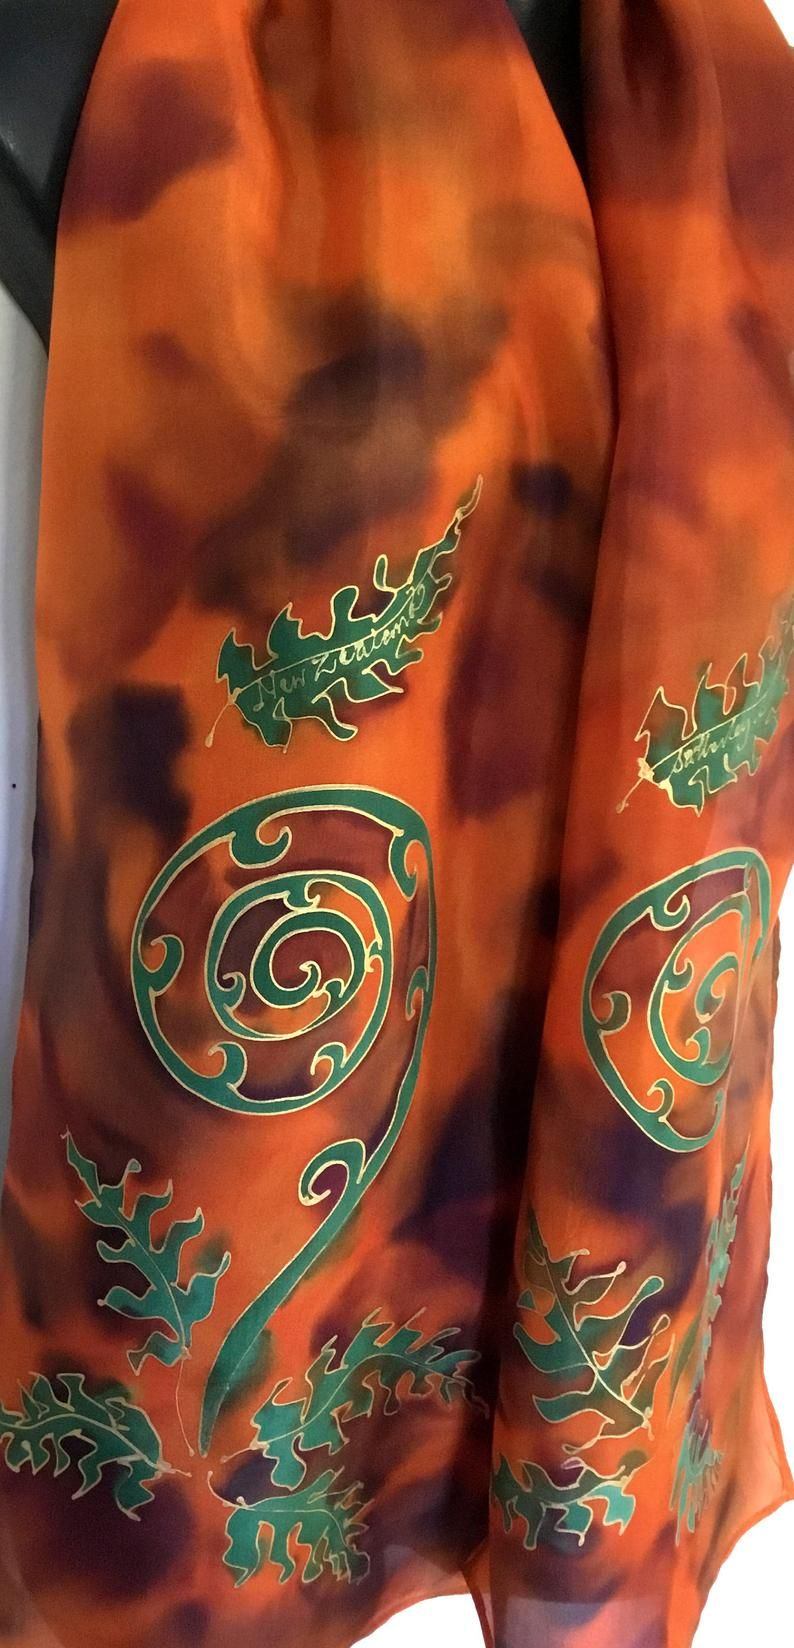 Orange Gold Handpainted SILK SCARF, New Zealand Koru, Tree Ferns, KIWIANA, Gold outlines, Tawny, Habotai Silk, 28 x 150cm, Handmade Gift